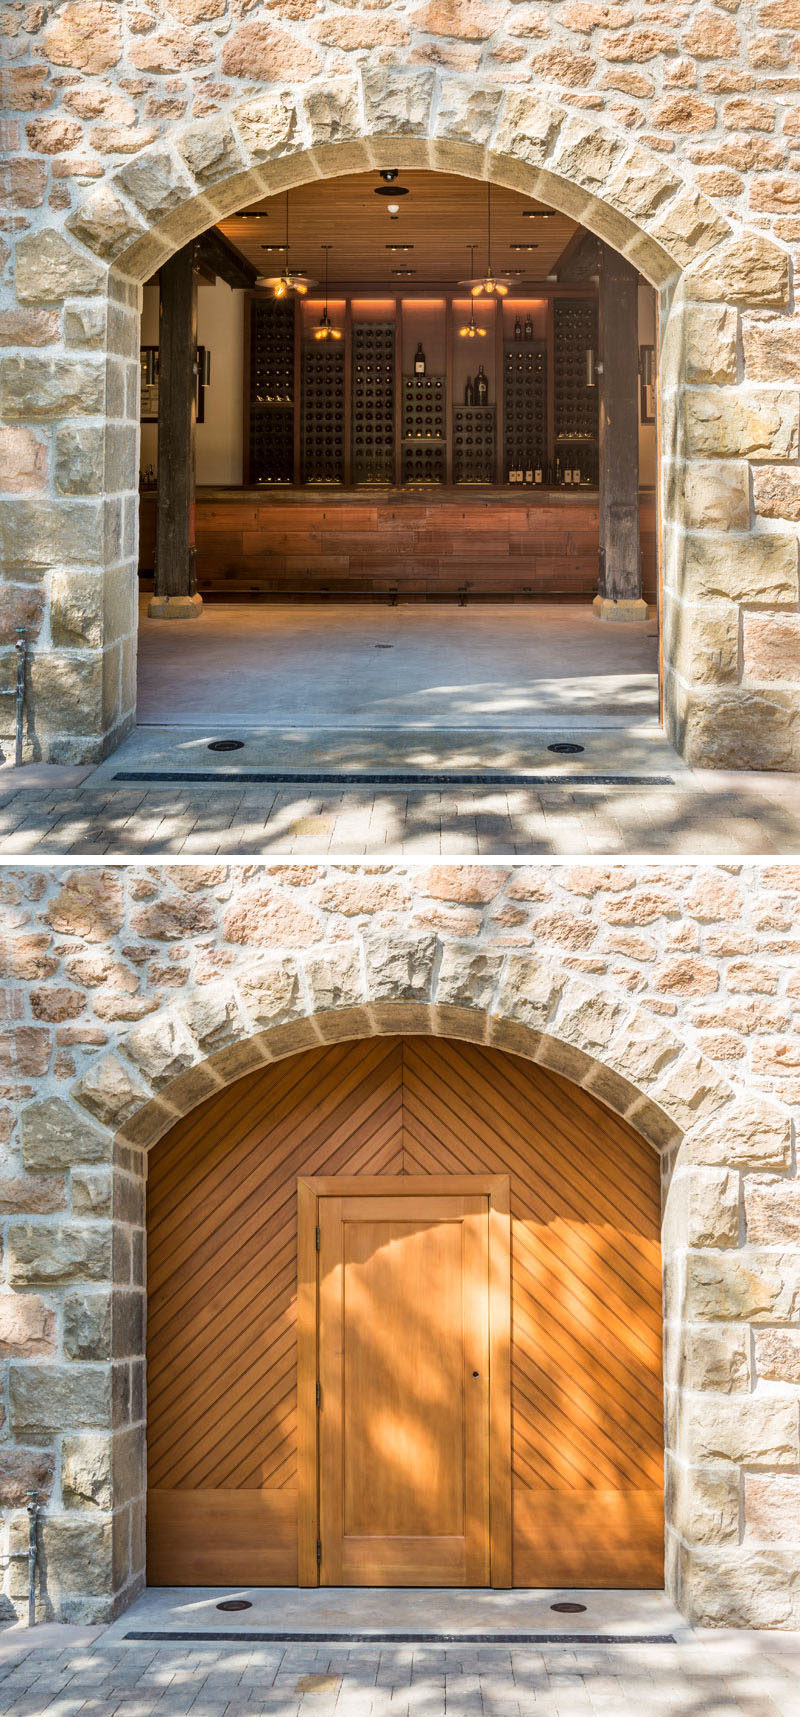 This bar at a vineyard has stone archways and large wooden doors that open up to the courtyard outside.